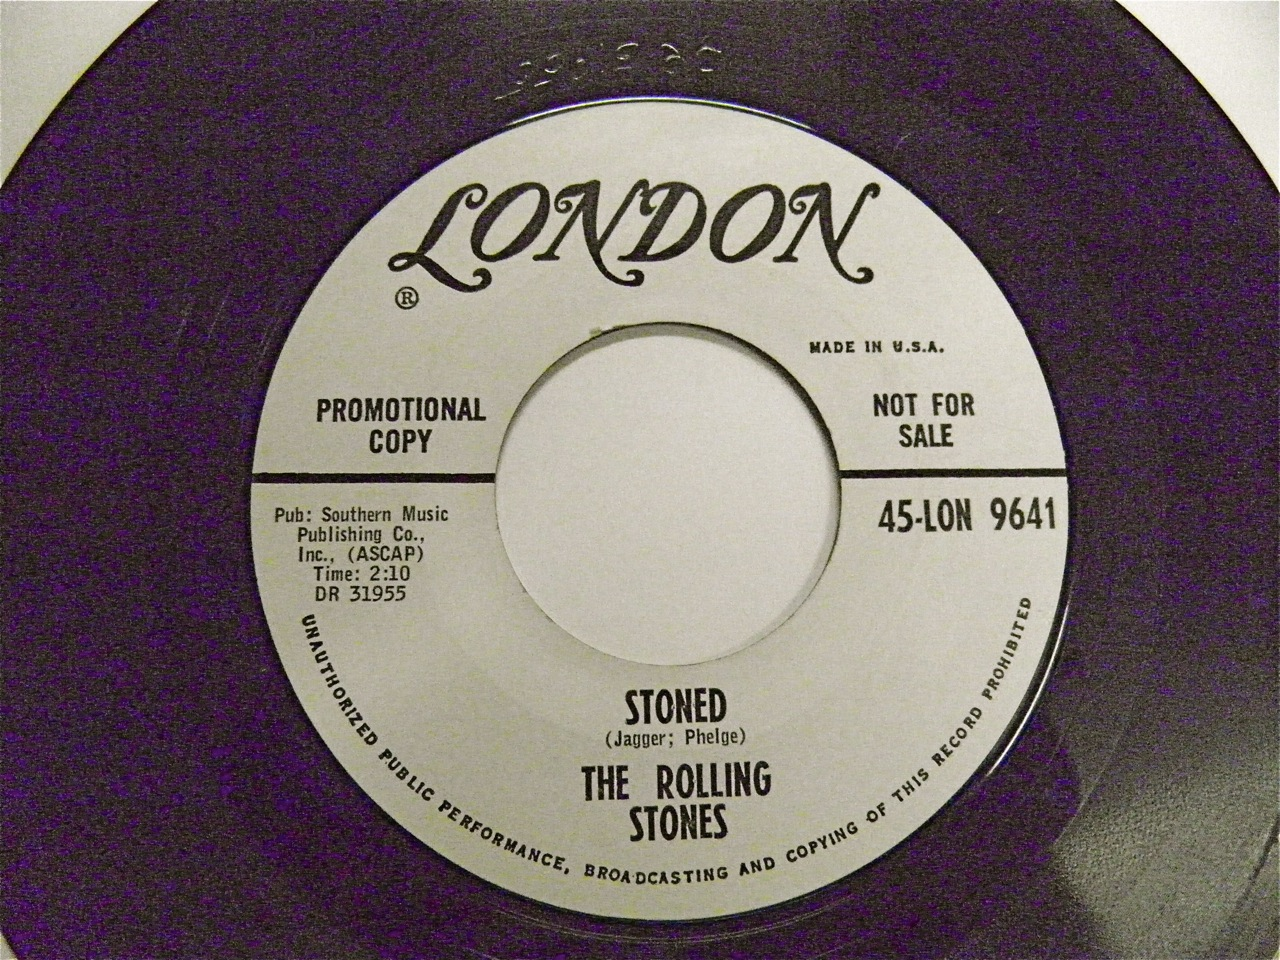 The Rolling Stones 45 promo - STONED